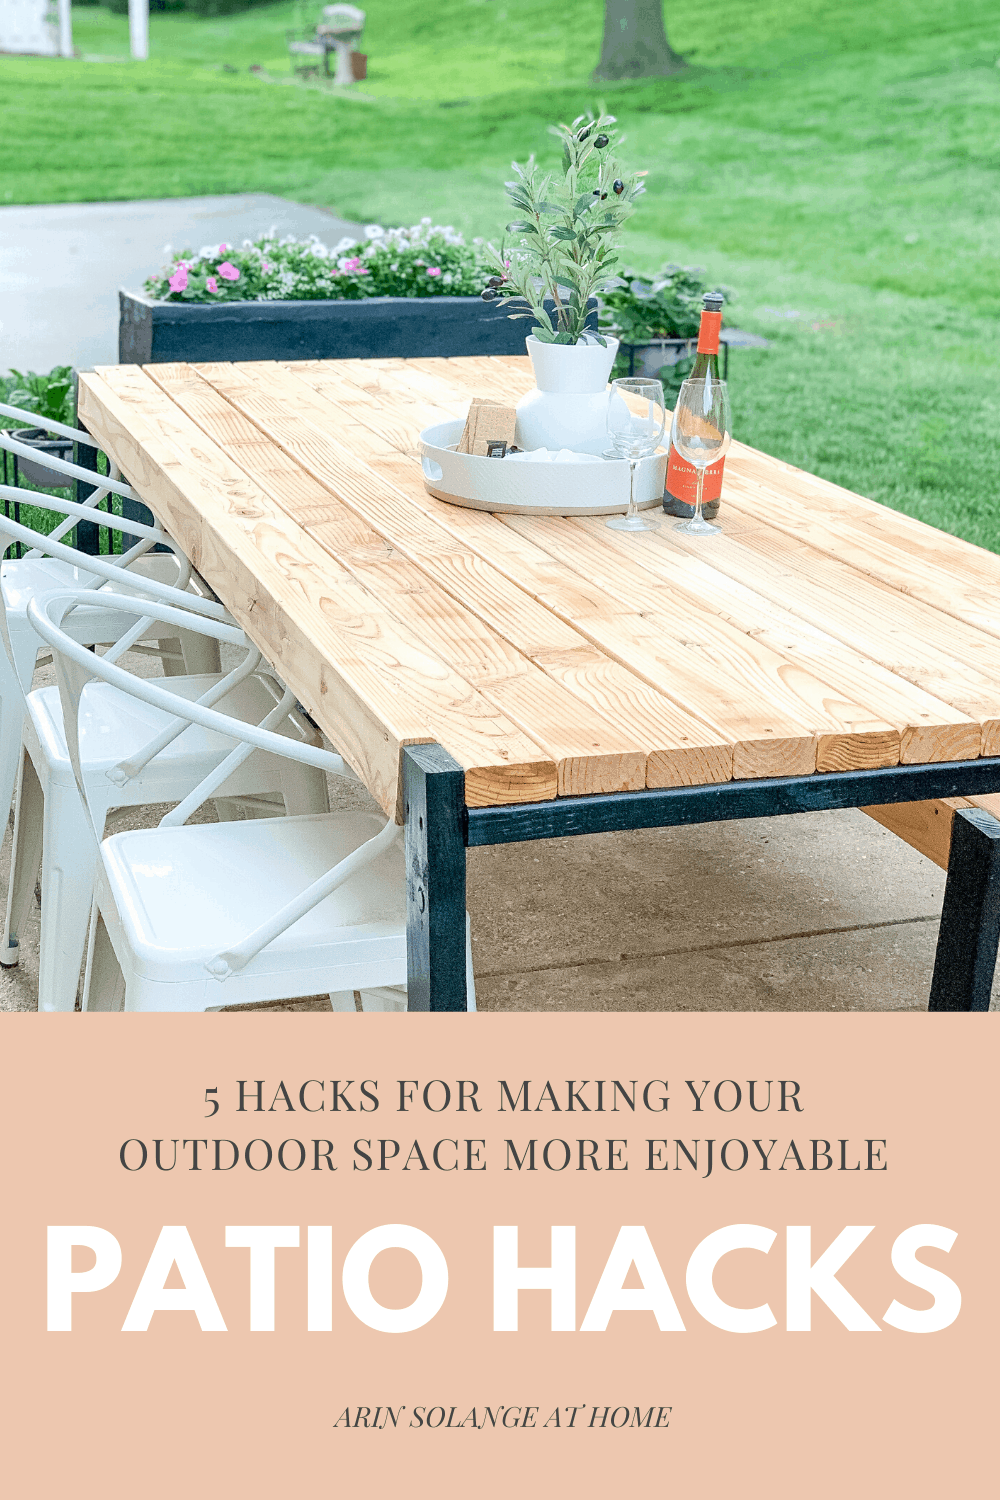 Patio hacks to elevate your outdoor space